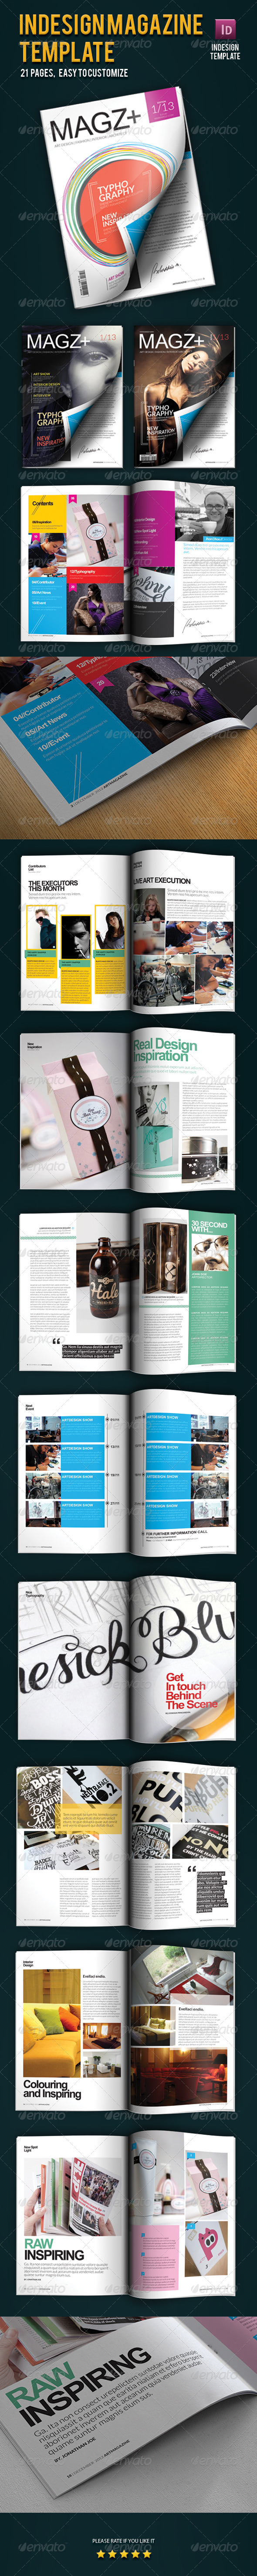 GraphicRiver Indesign Magazine Template 3409205